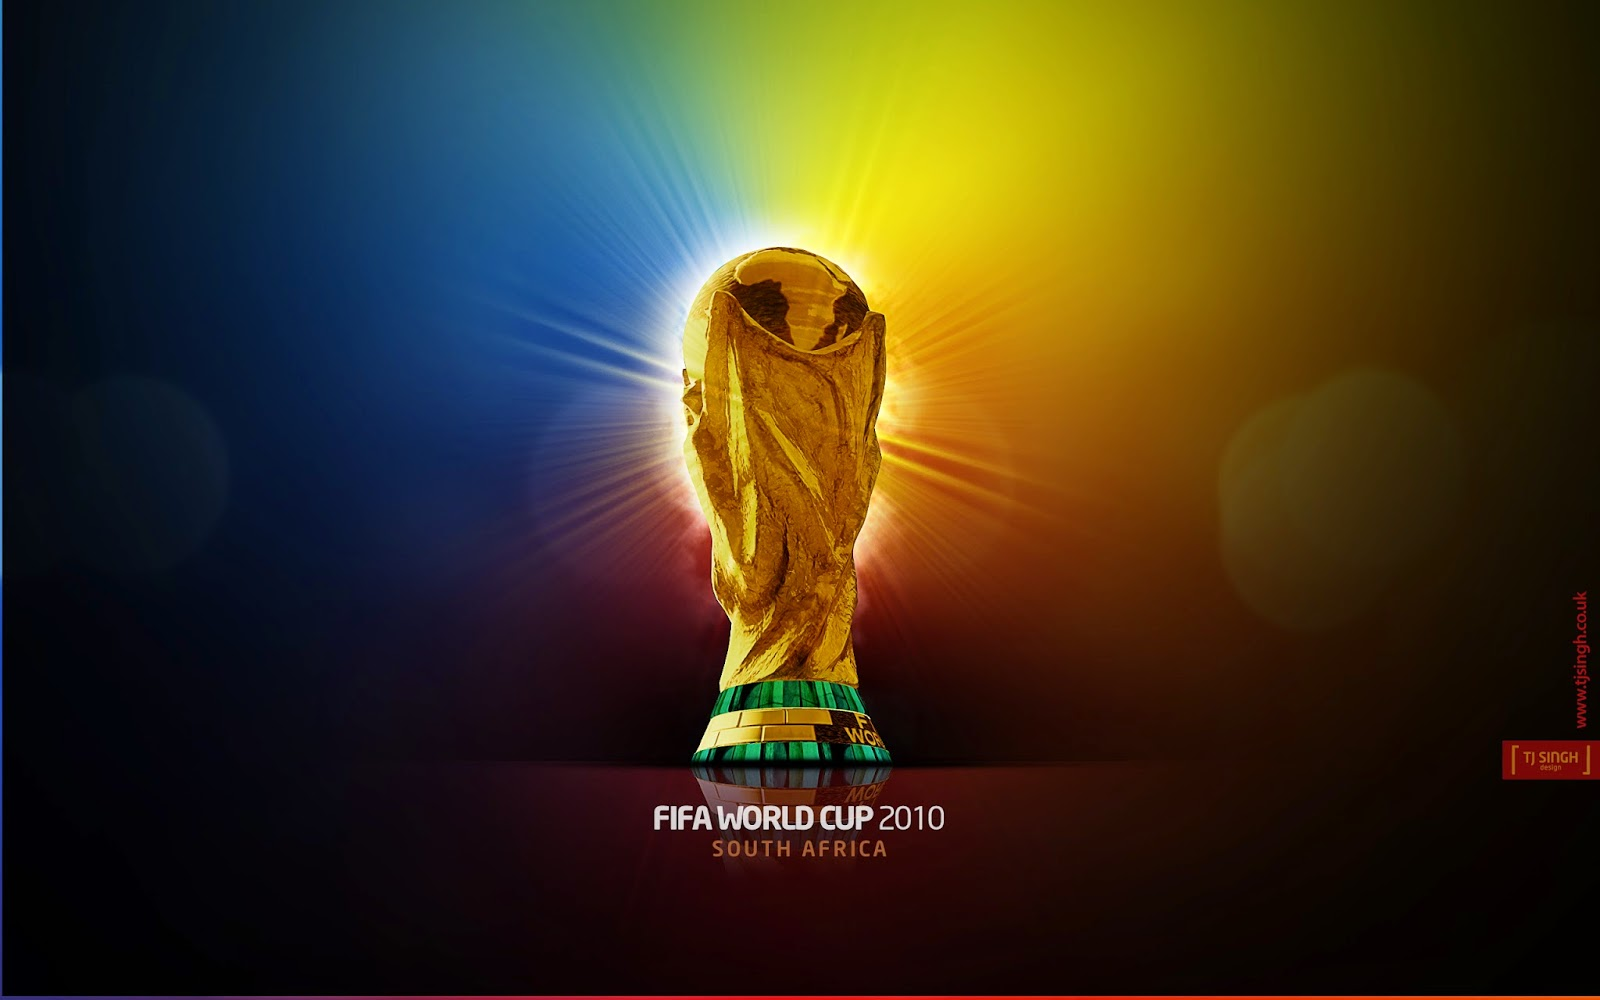 FIFA World cup 2014for picture